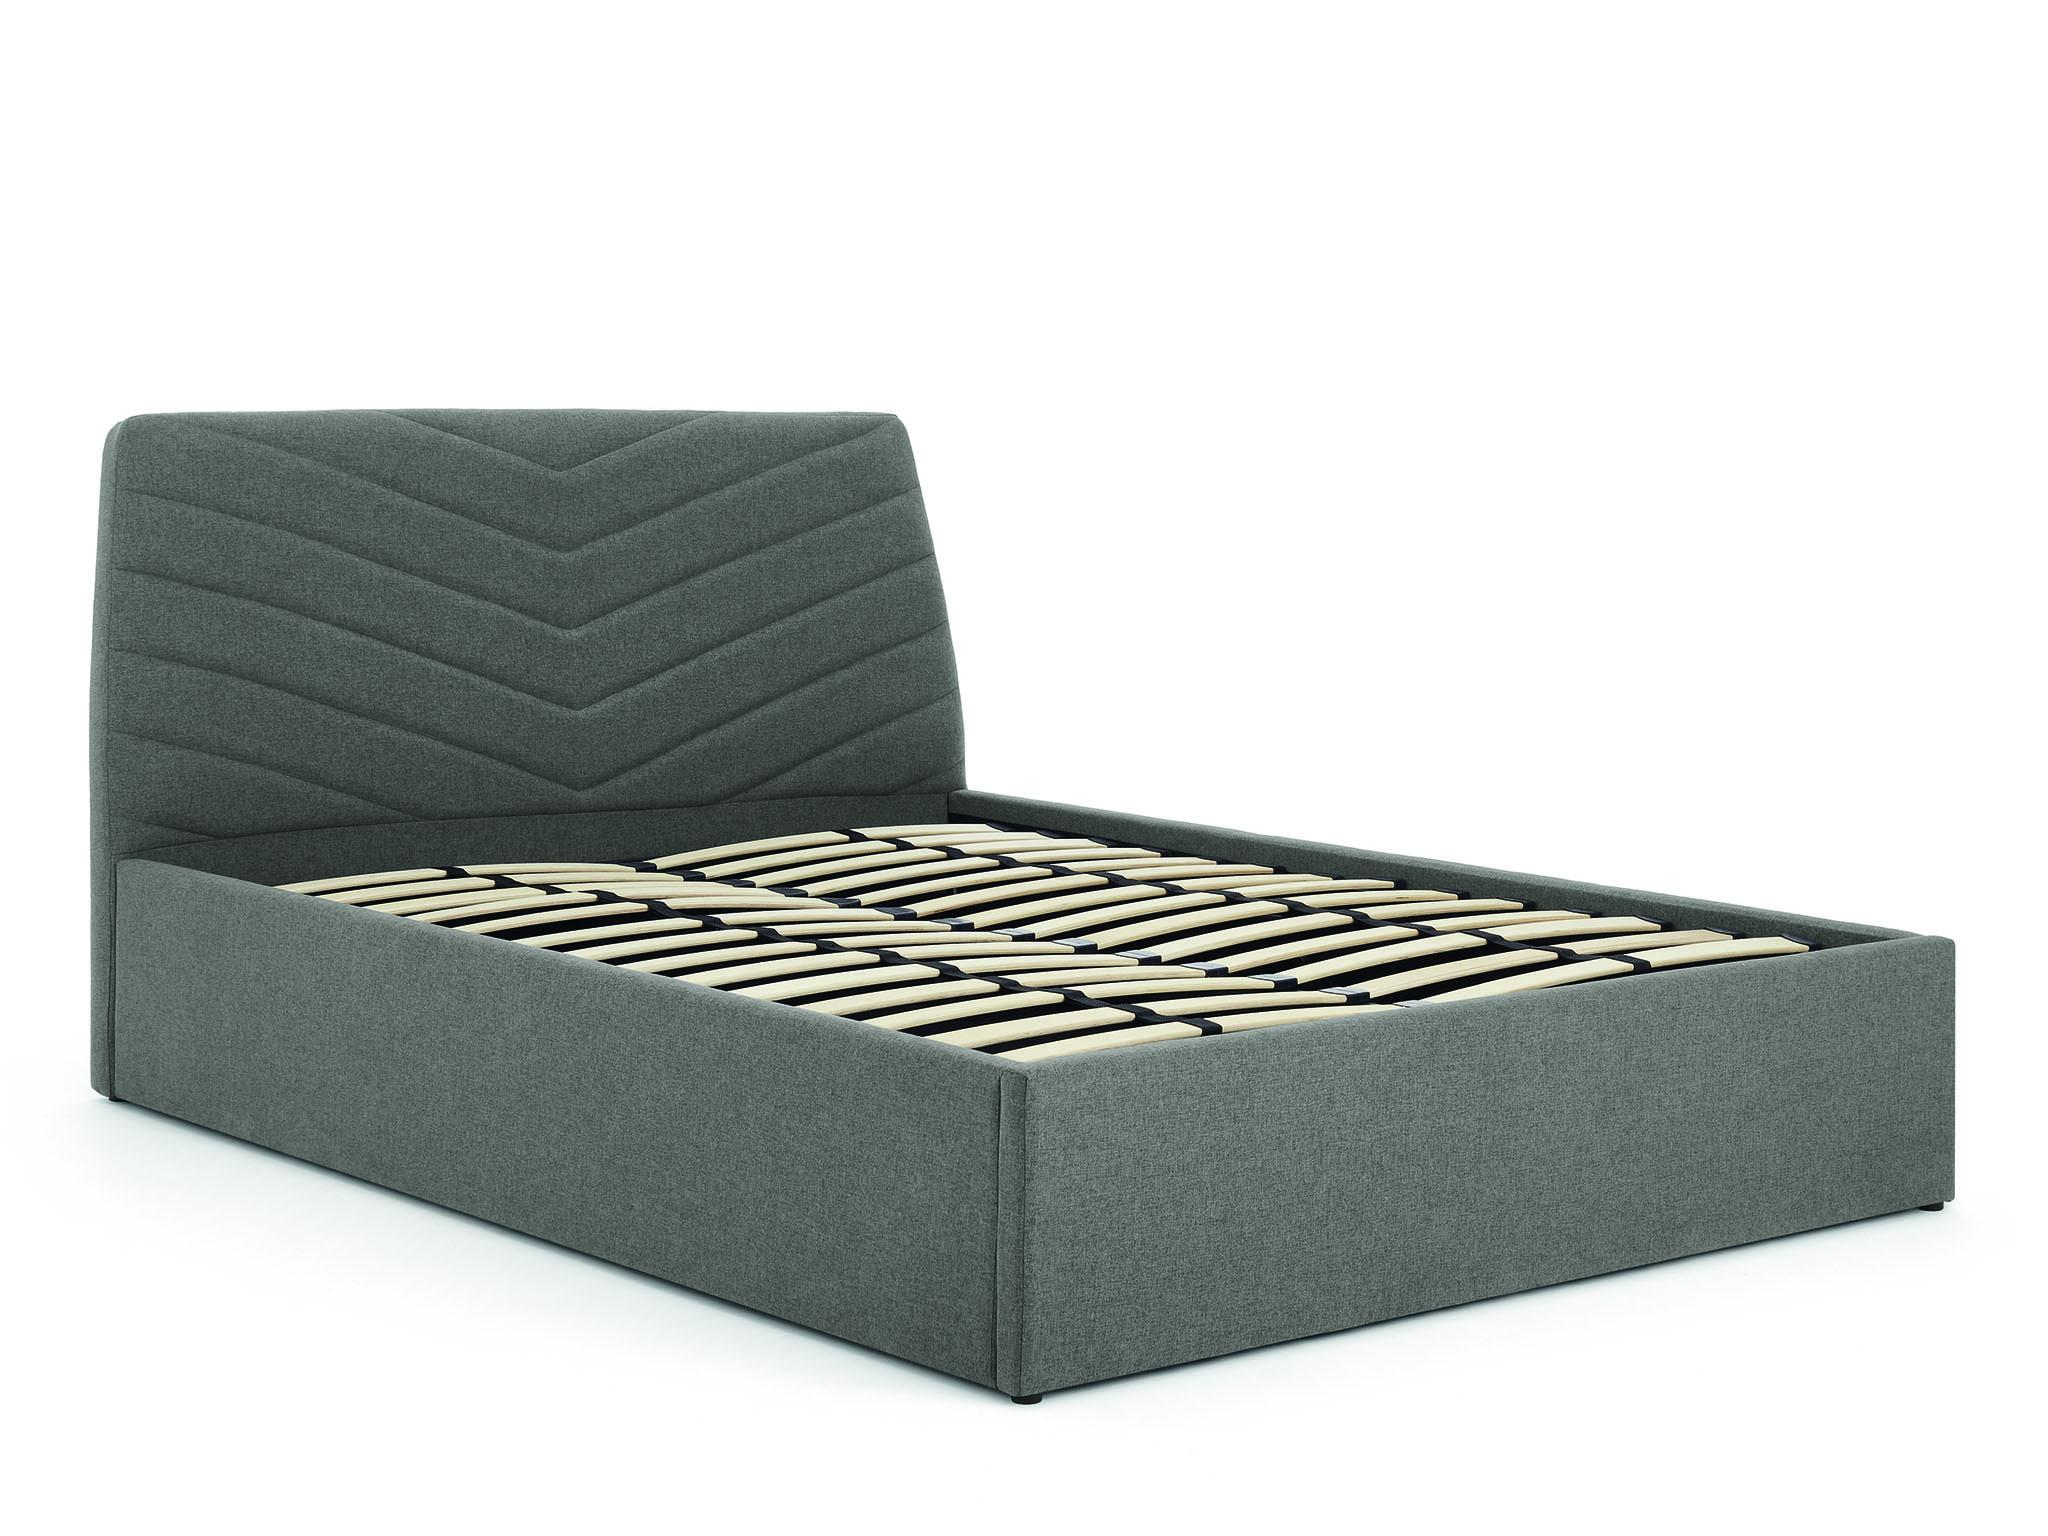 12 best storage beds | The Independent